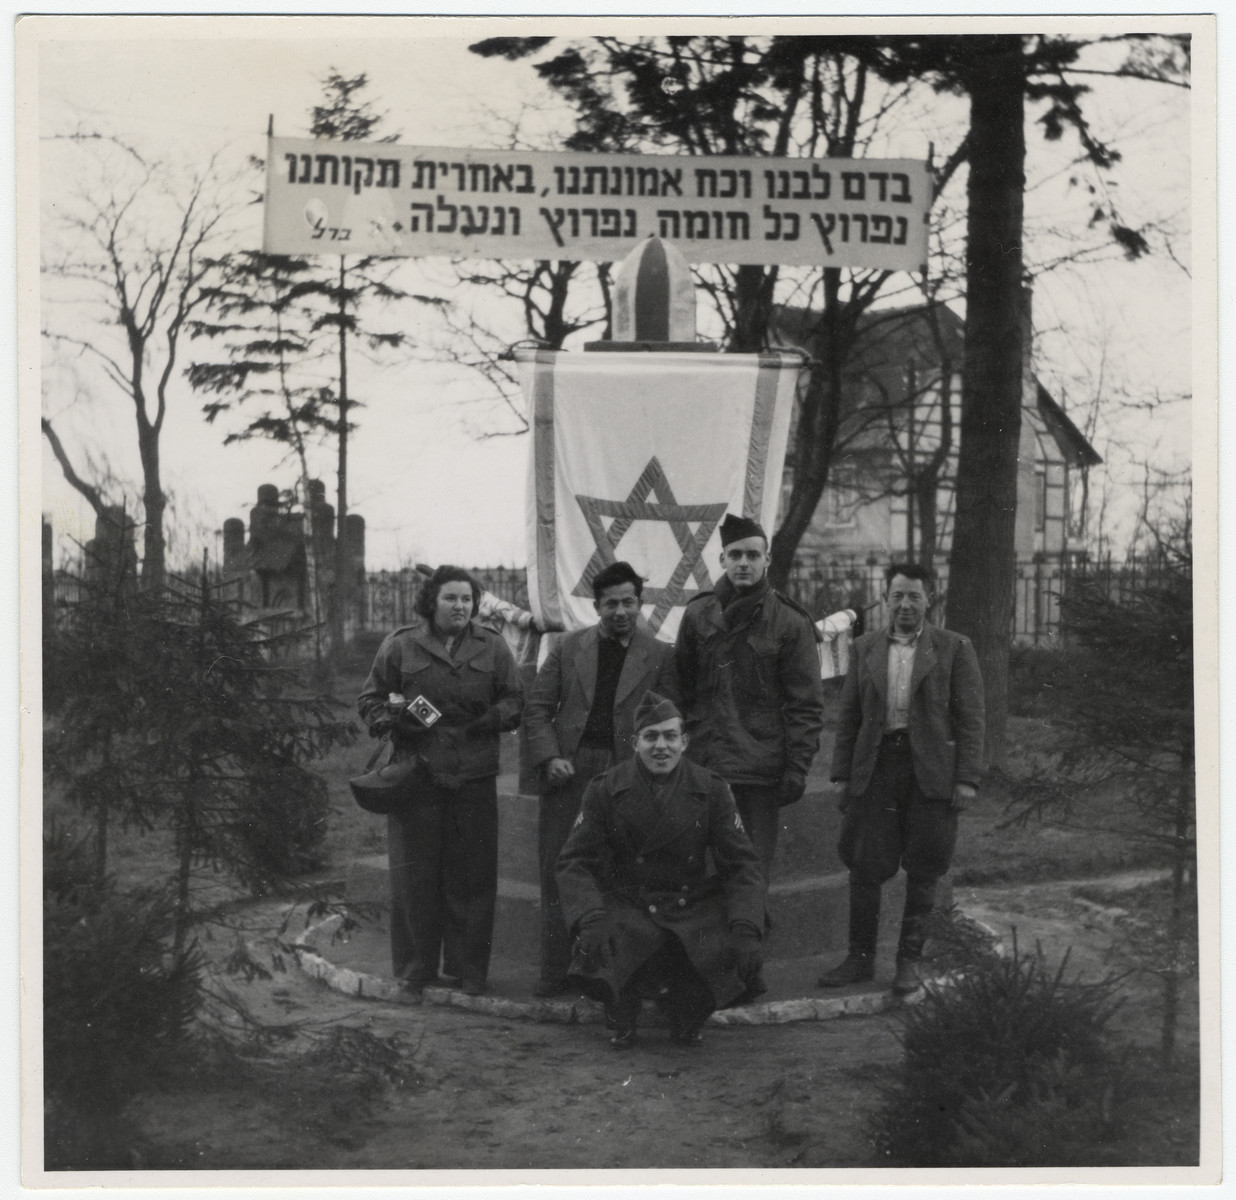 """Five people, including members of the Frankfurt Jewish GI Council pose in front of a memorial in a German displaced persons' camp.  Crouching in front in Asher Hirsh, a German Jewish refugee who joined the US Army.  The Hebrew banner reads: """"With the blood of our hearts, and the strength of our faith, with our last hopes, we will breach every wall, breach and ascend."""""""